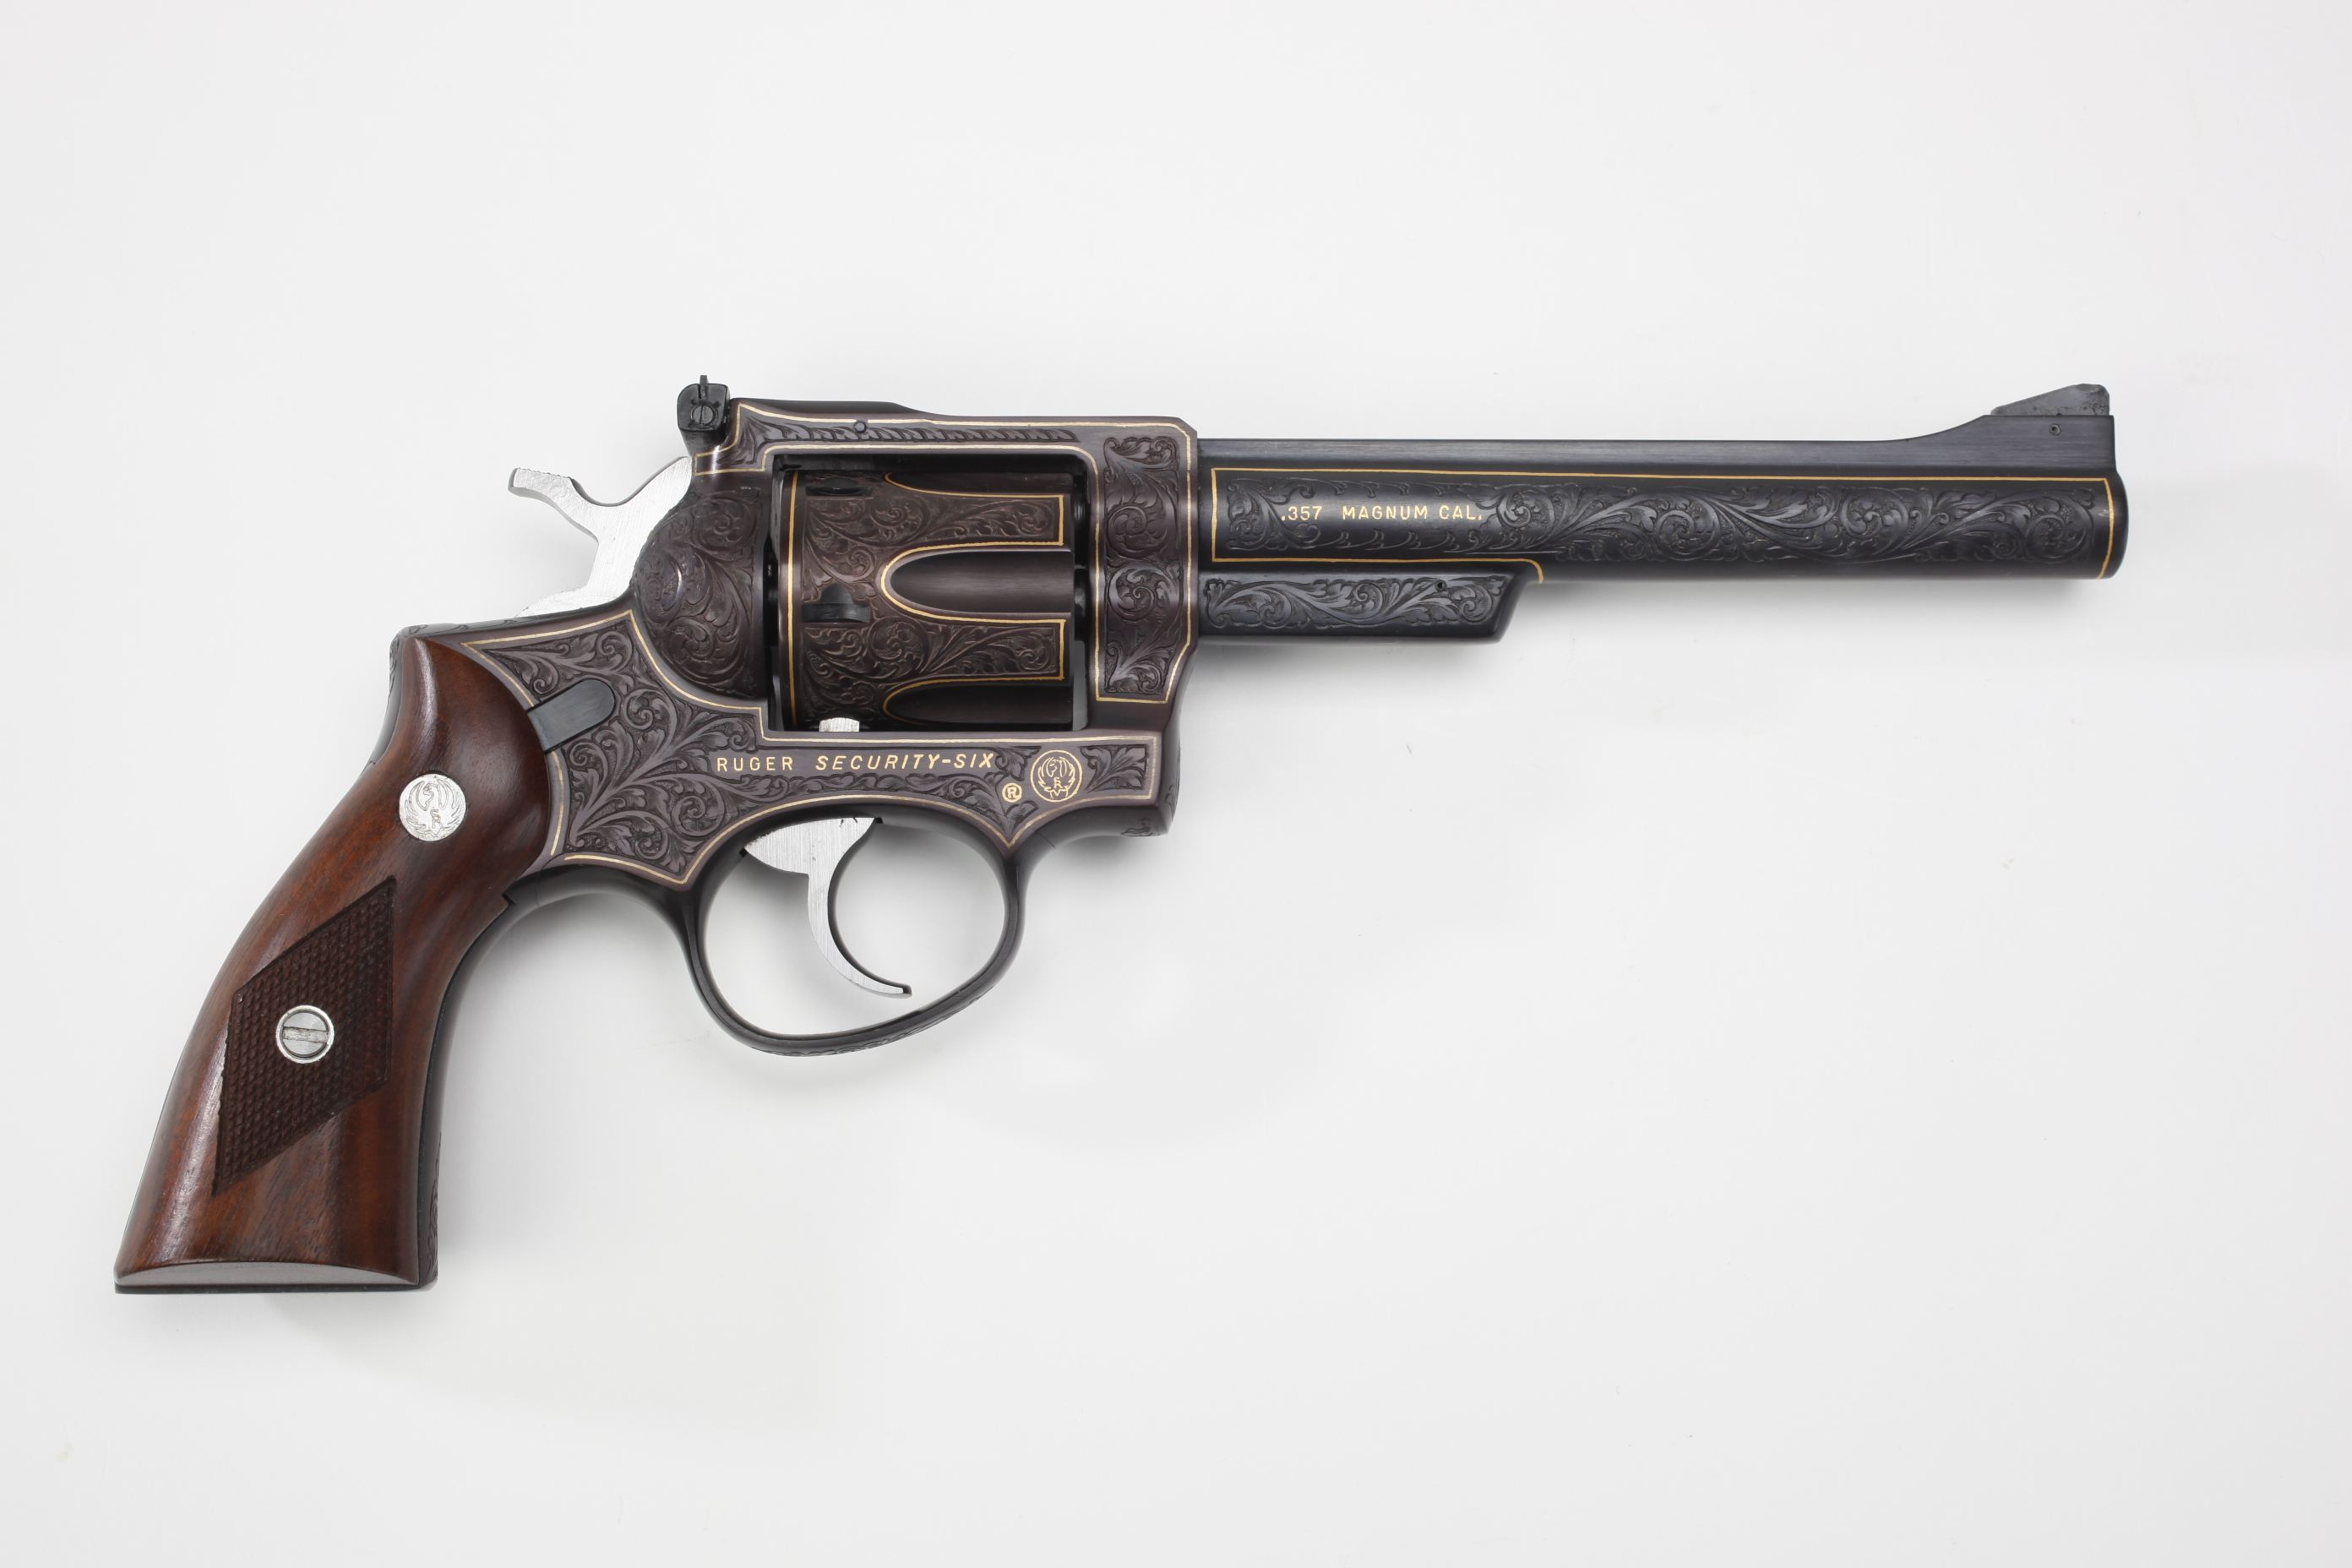 Sturm, Ruger & Co. Security-Six Double-Action Revolver